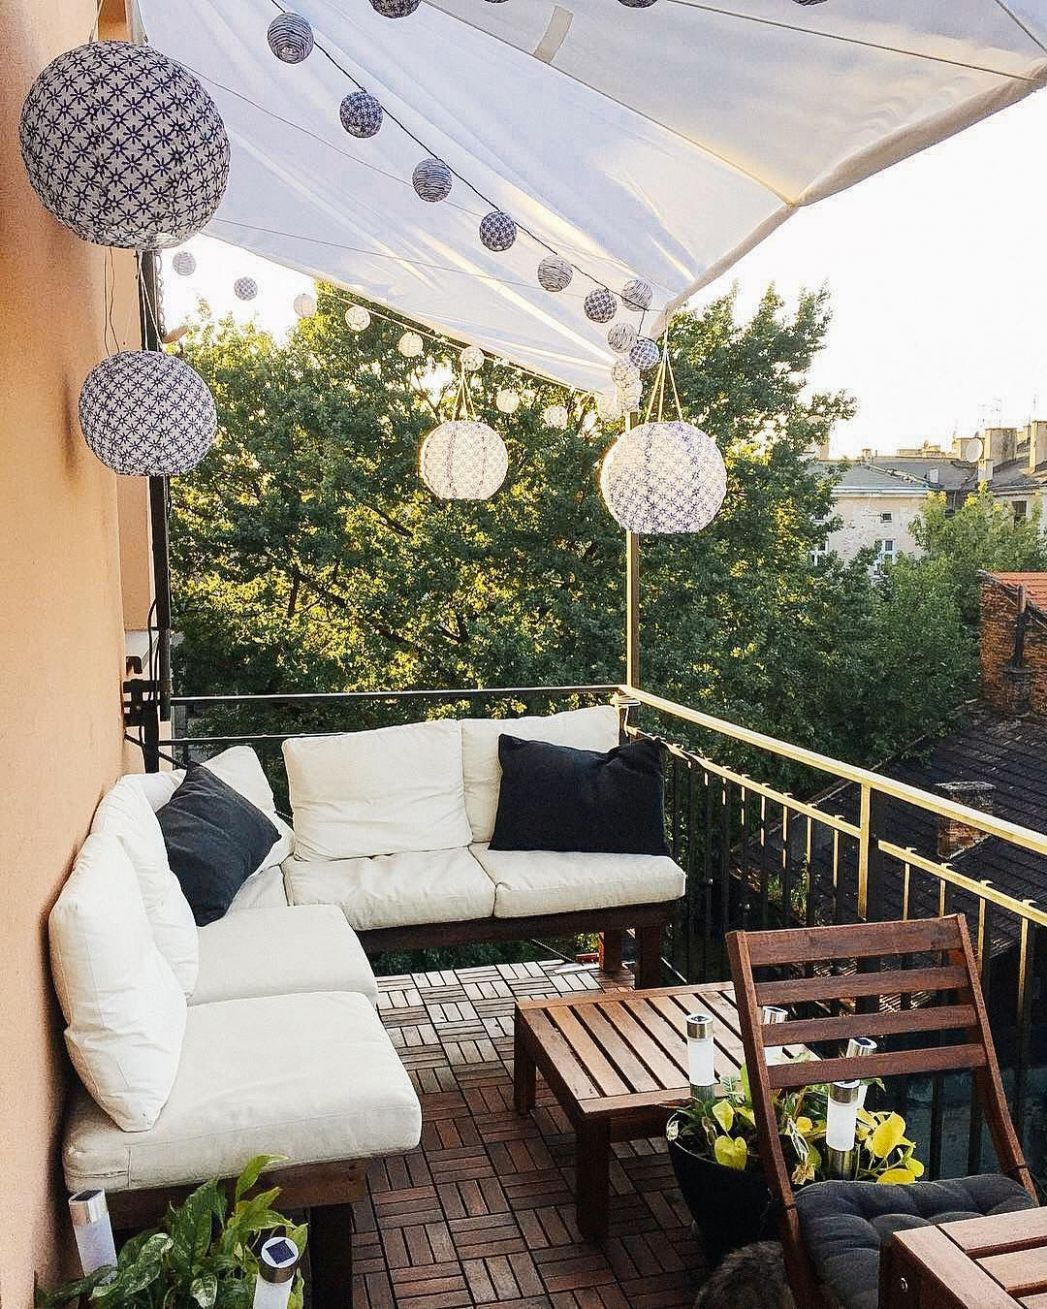 8 Ways to Make the Most of Your Tiny Apartment Balcony - balcony ideas furniture